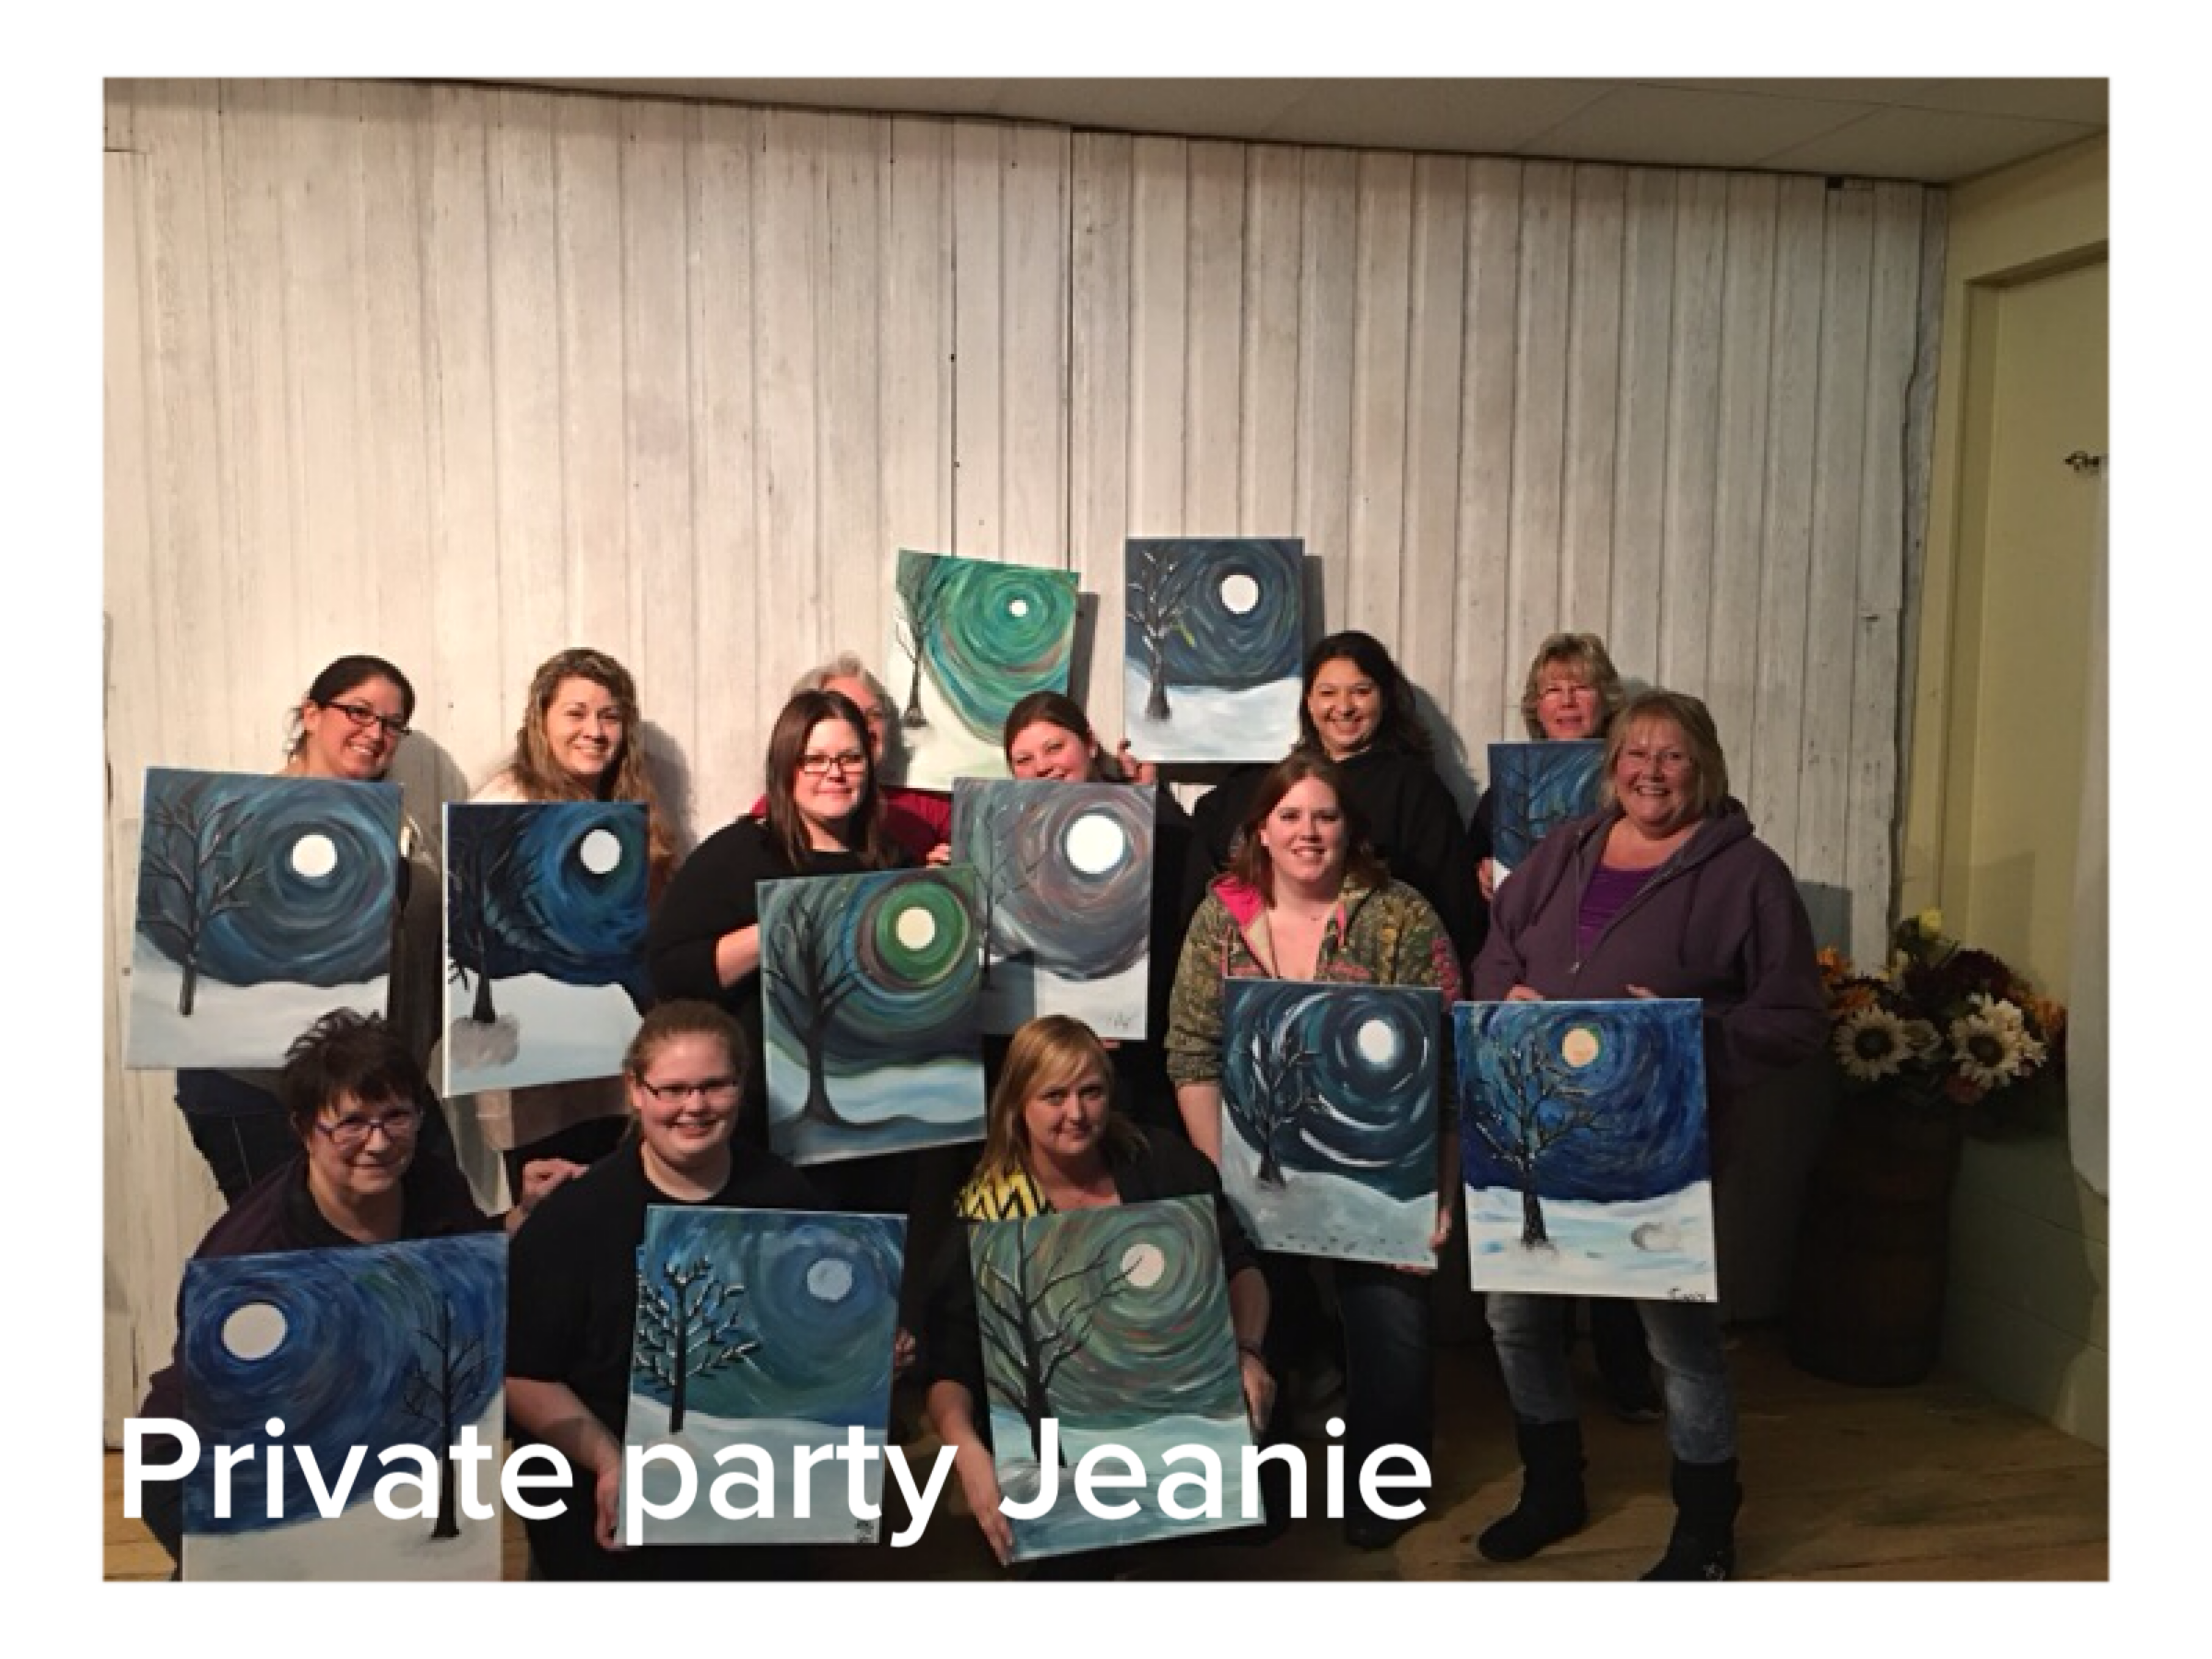 Private party Jeanie